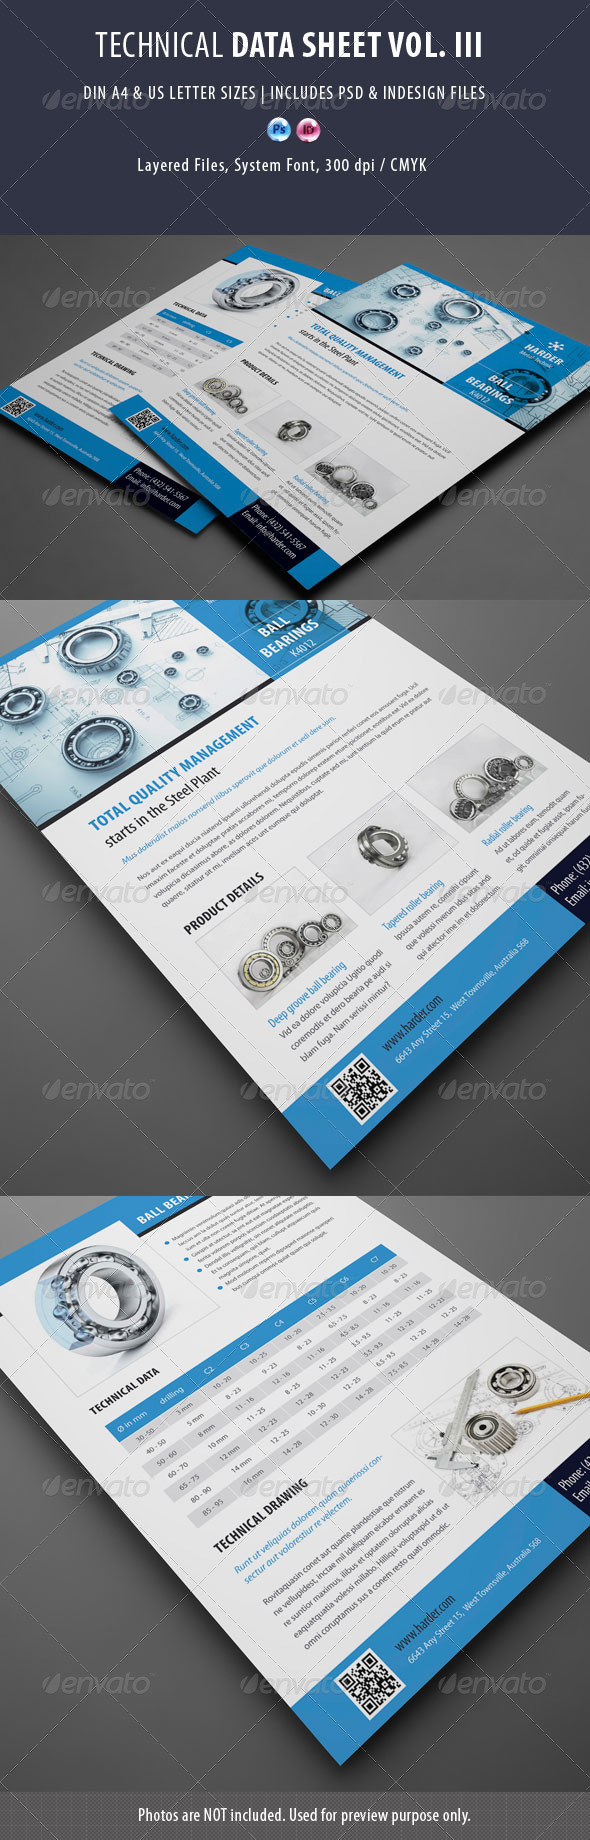 GraphicRiver Technical Data or Product Sheet Vol III 7715076